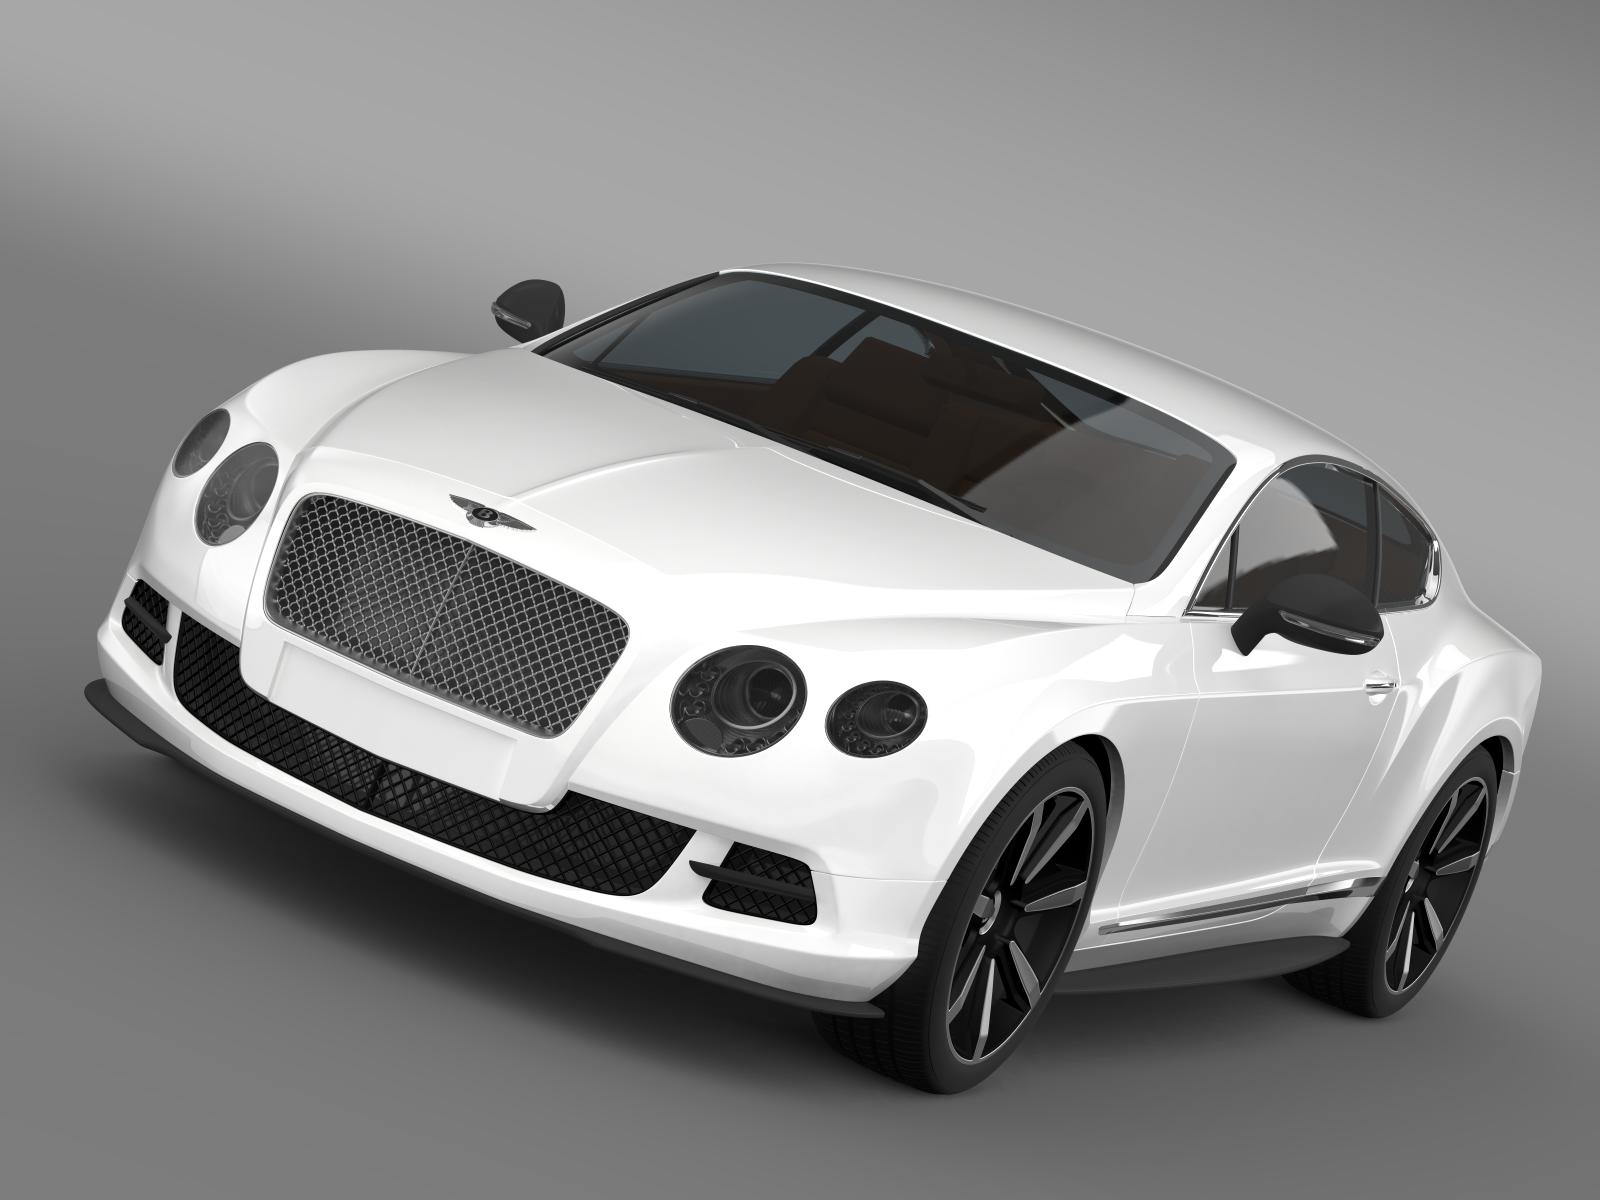 bentley continental gt mulliner styling 2011 3d model 3ds max fbx c4d lwo ma mb hrc xsi obj 163480